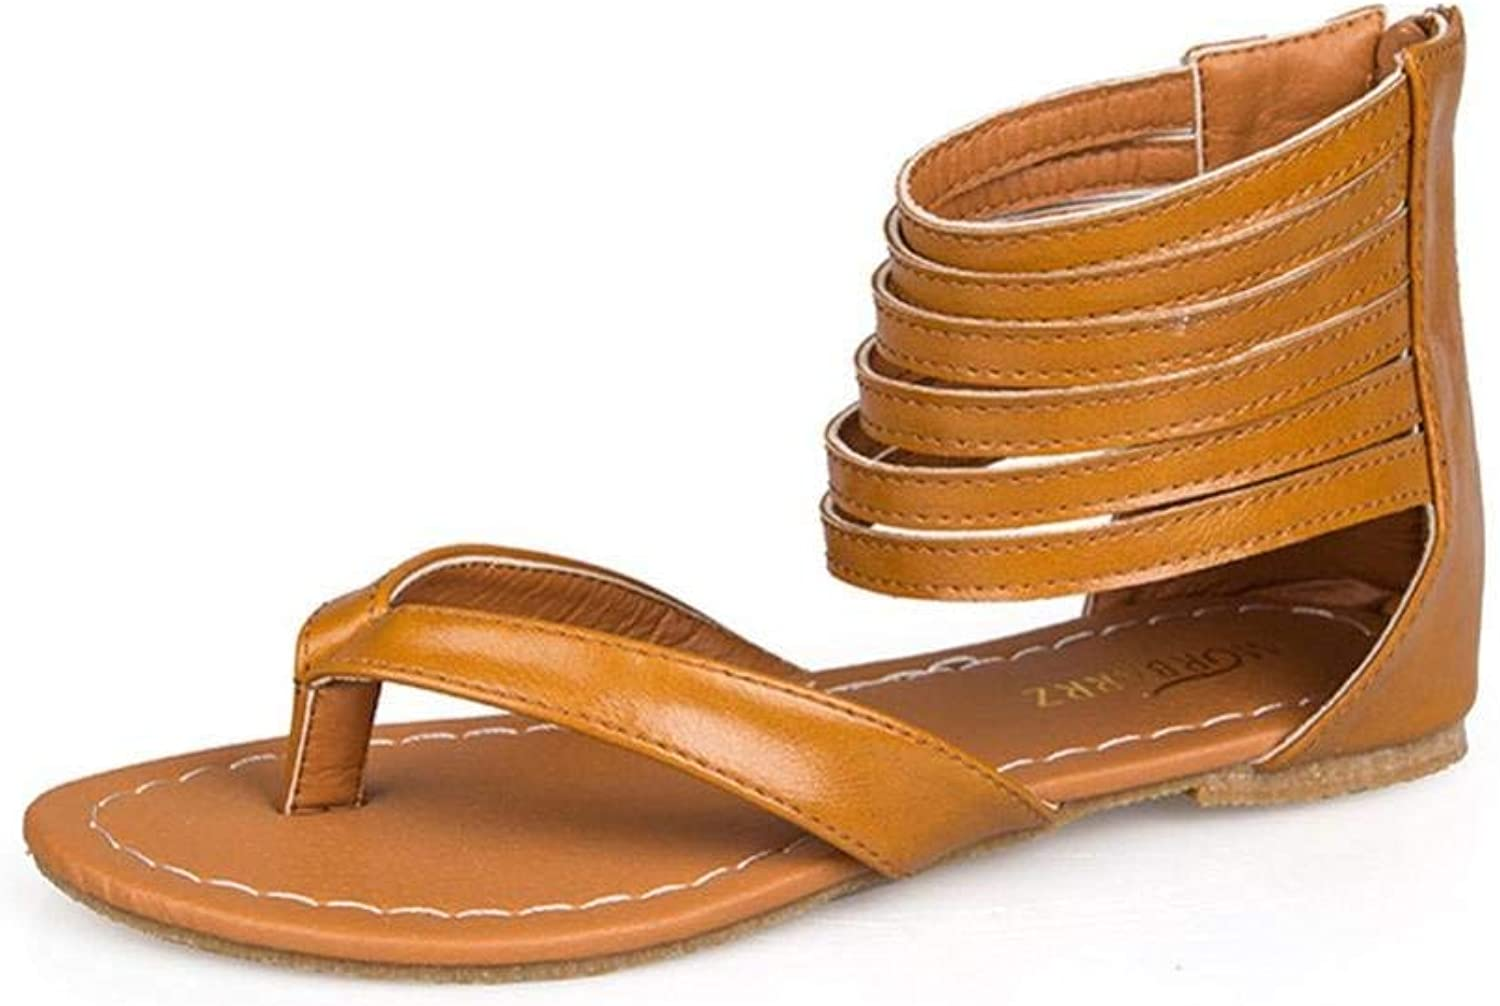 GouuoHi Womens Sandals Women's Zip Rome Strappy Gladiator Low Flat Flip Flops Beach Sandals shoes Fashion Leisure Elegant Cosy Wild Tight Super Quality for Womens